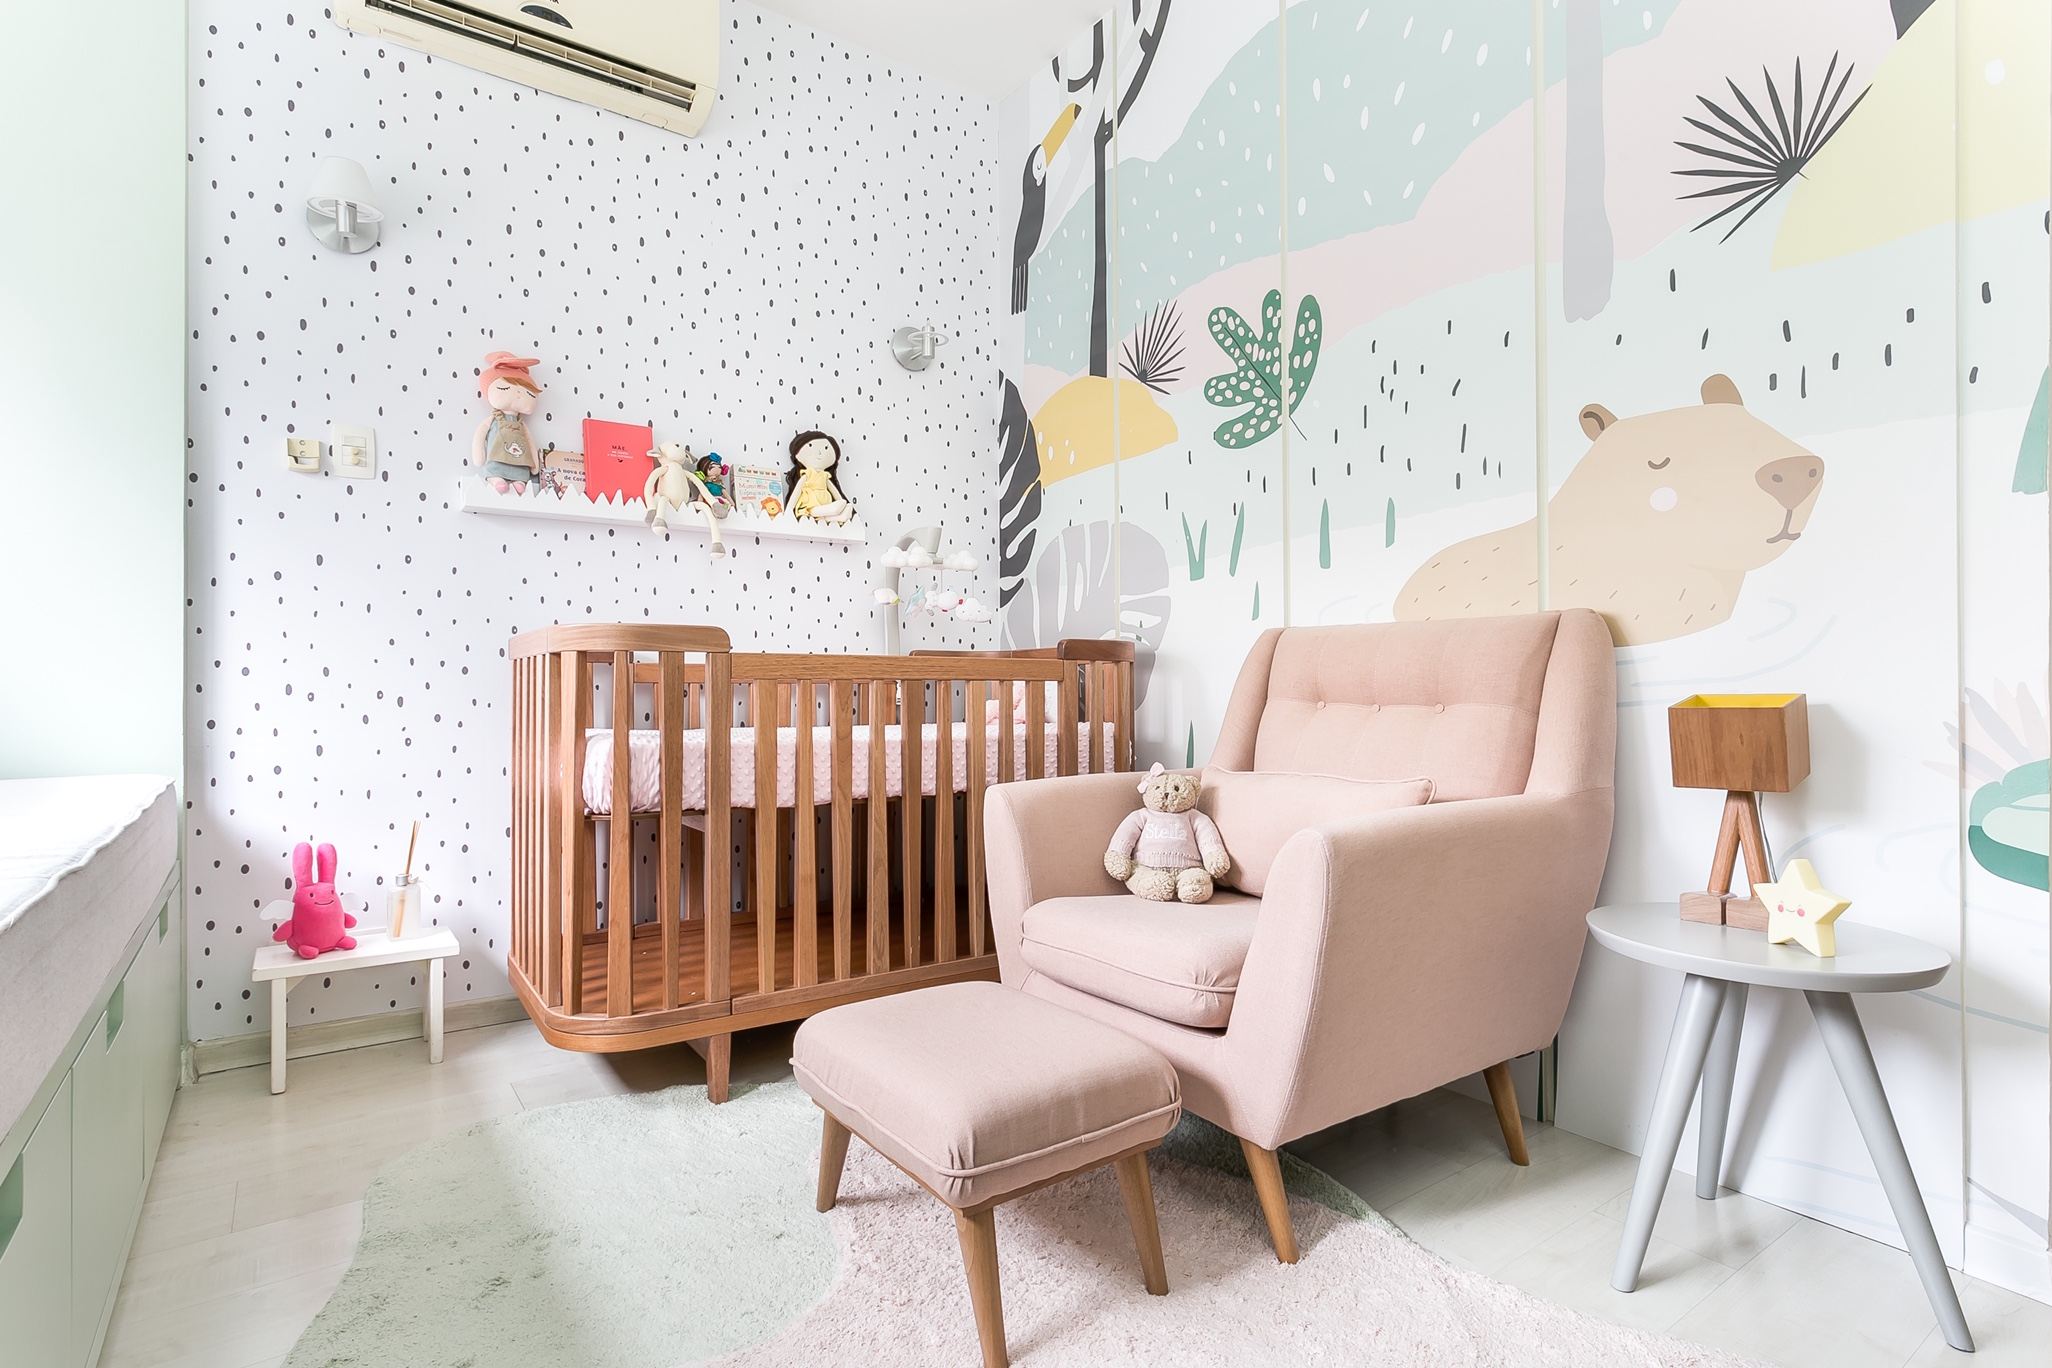 IMG 5179 - A Beautiful Baby Girl Bedroom, by Luiza Souza from Vogue